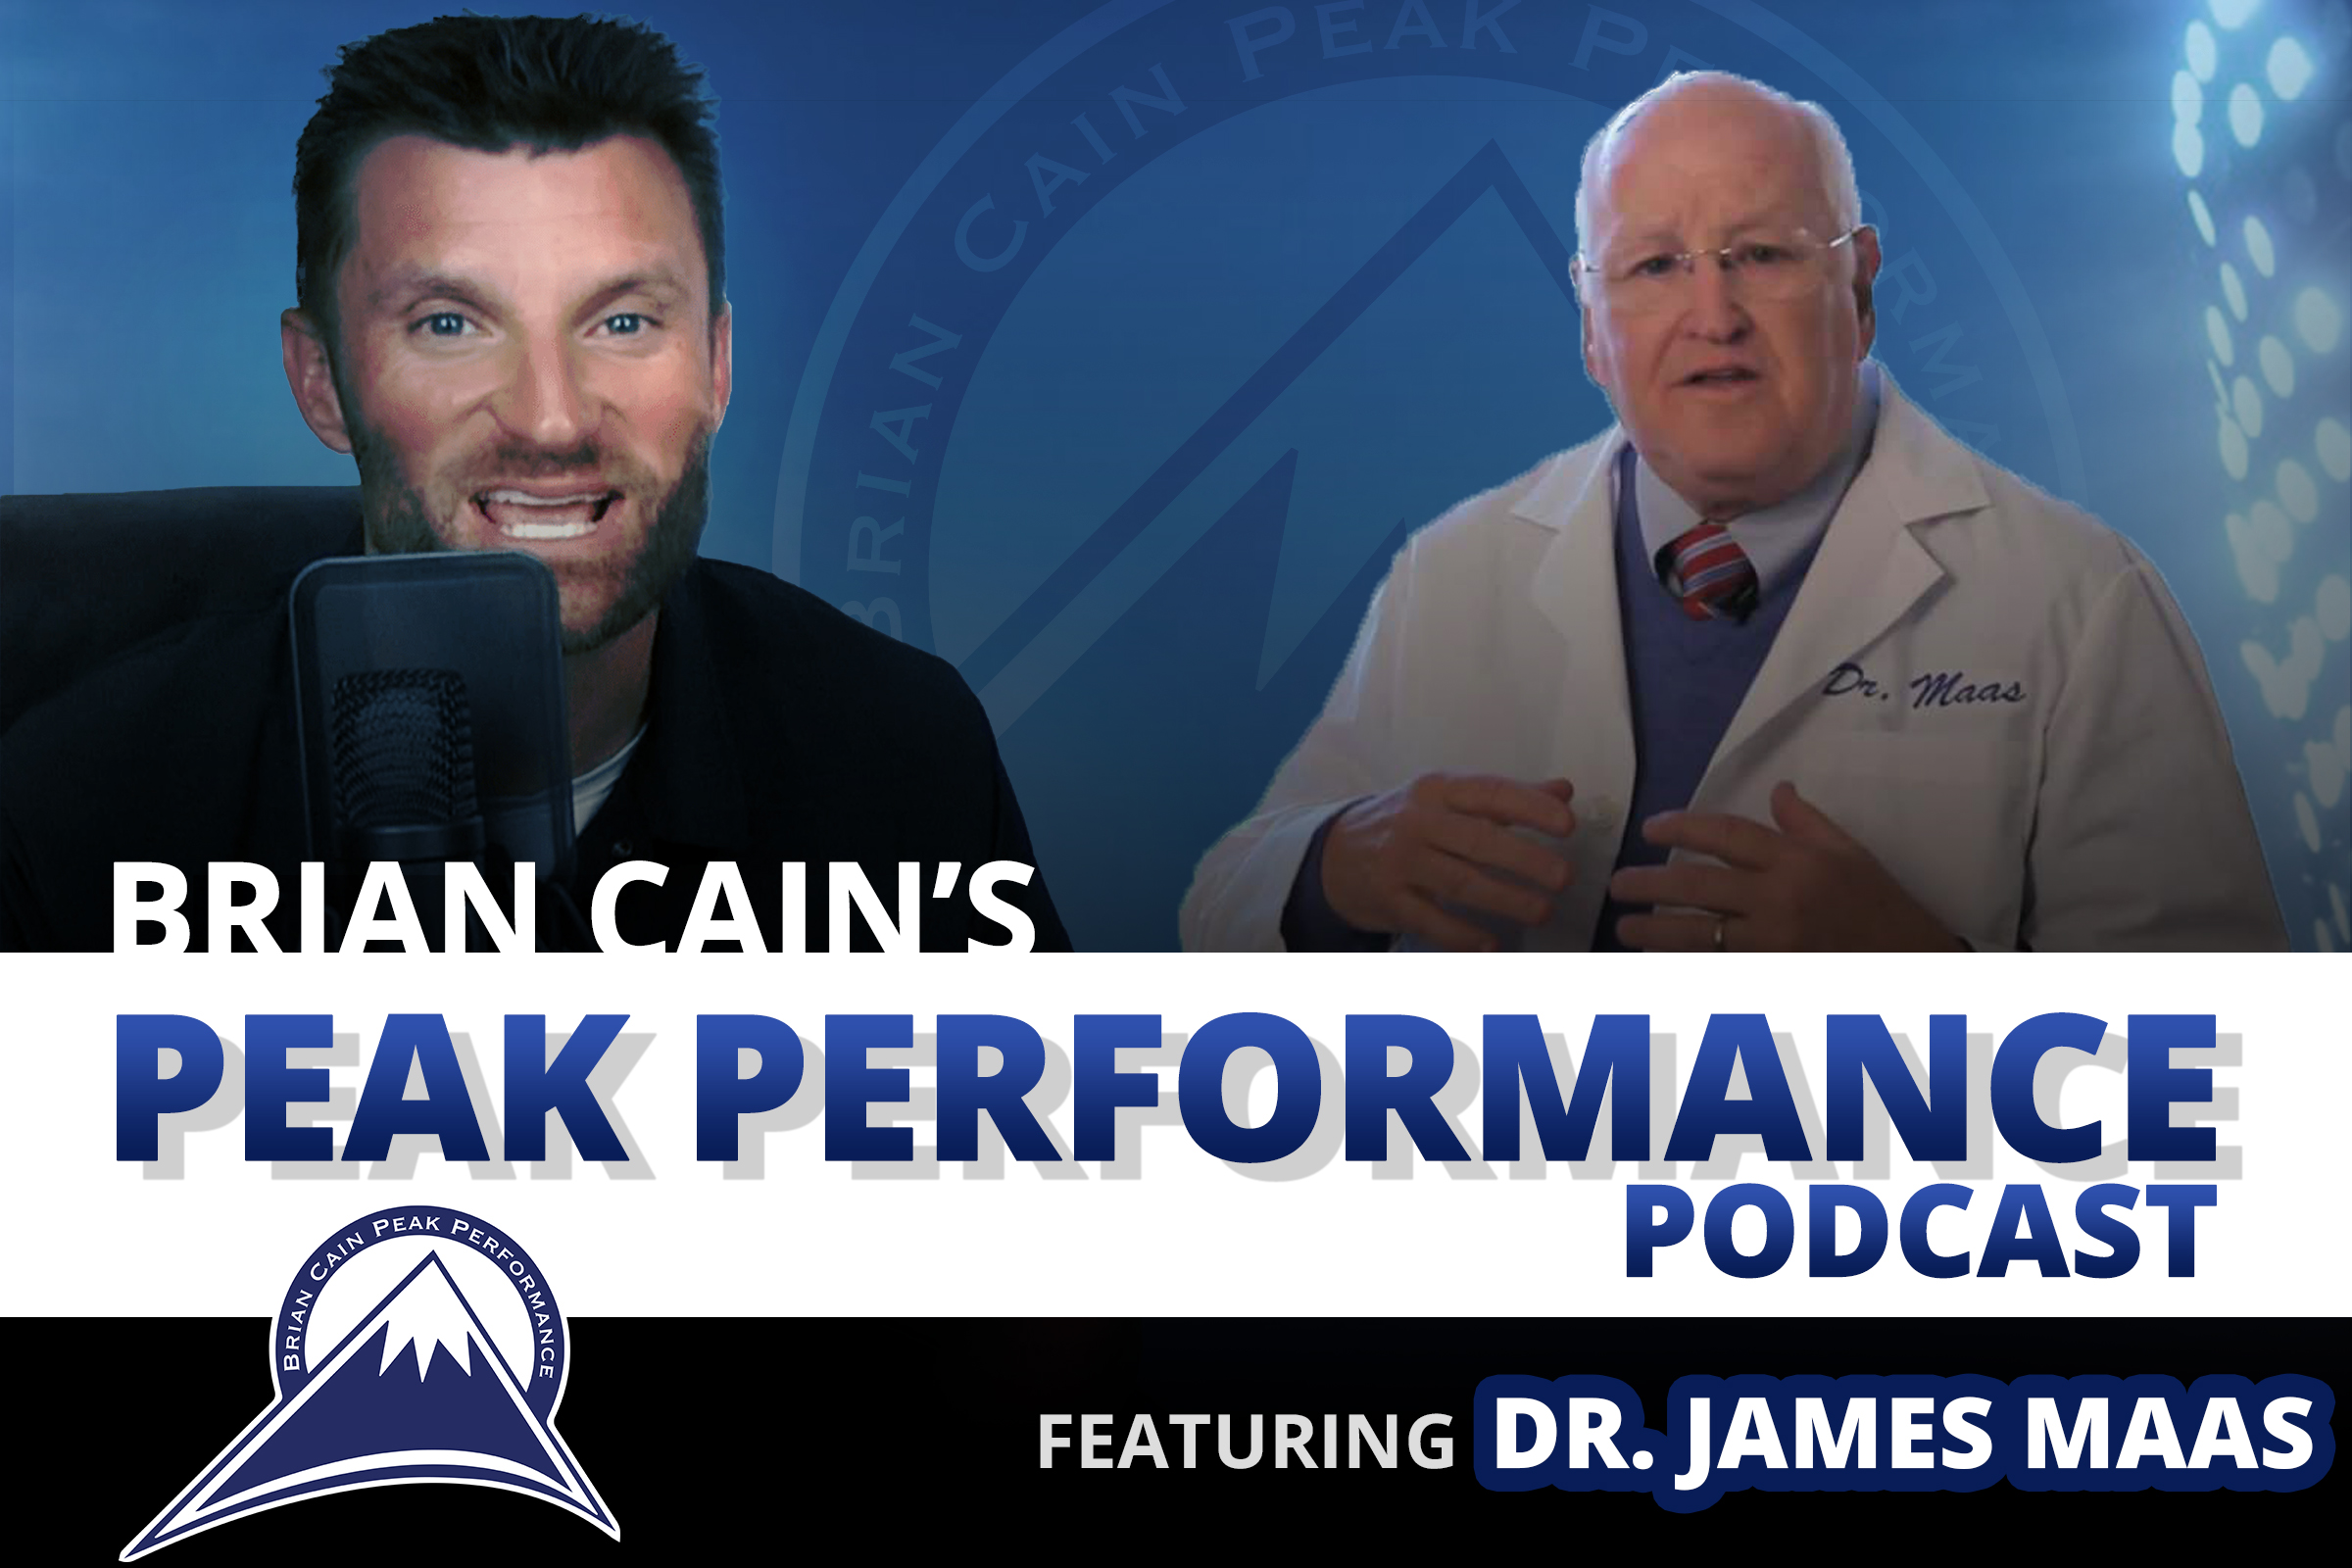 bc141 dr james maas sleep the missing link in peak performance